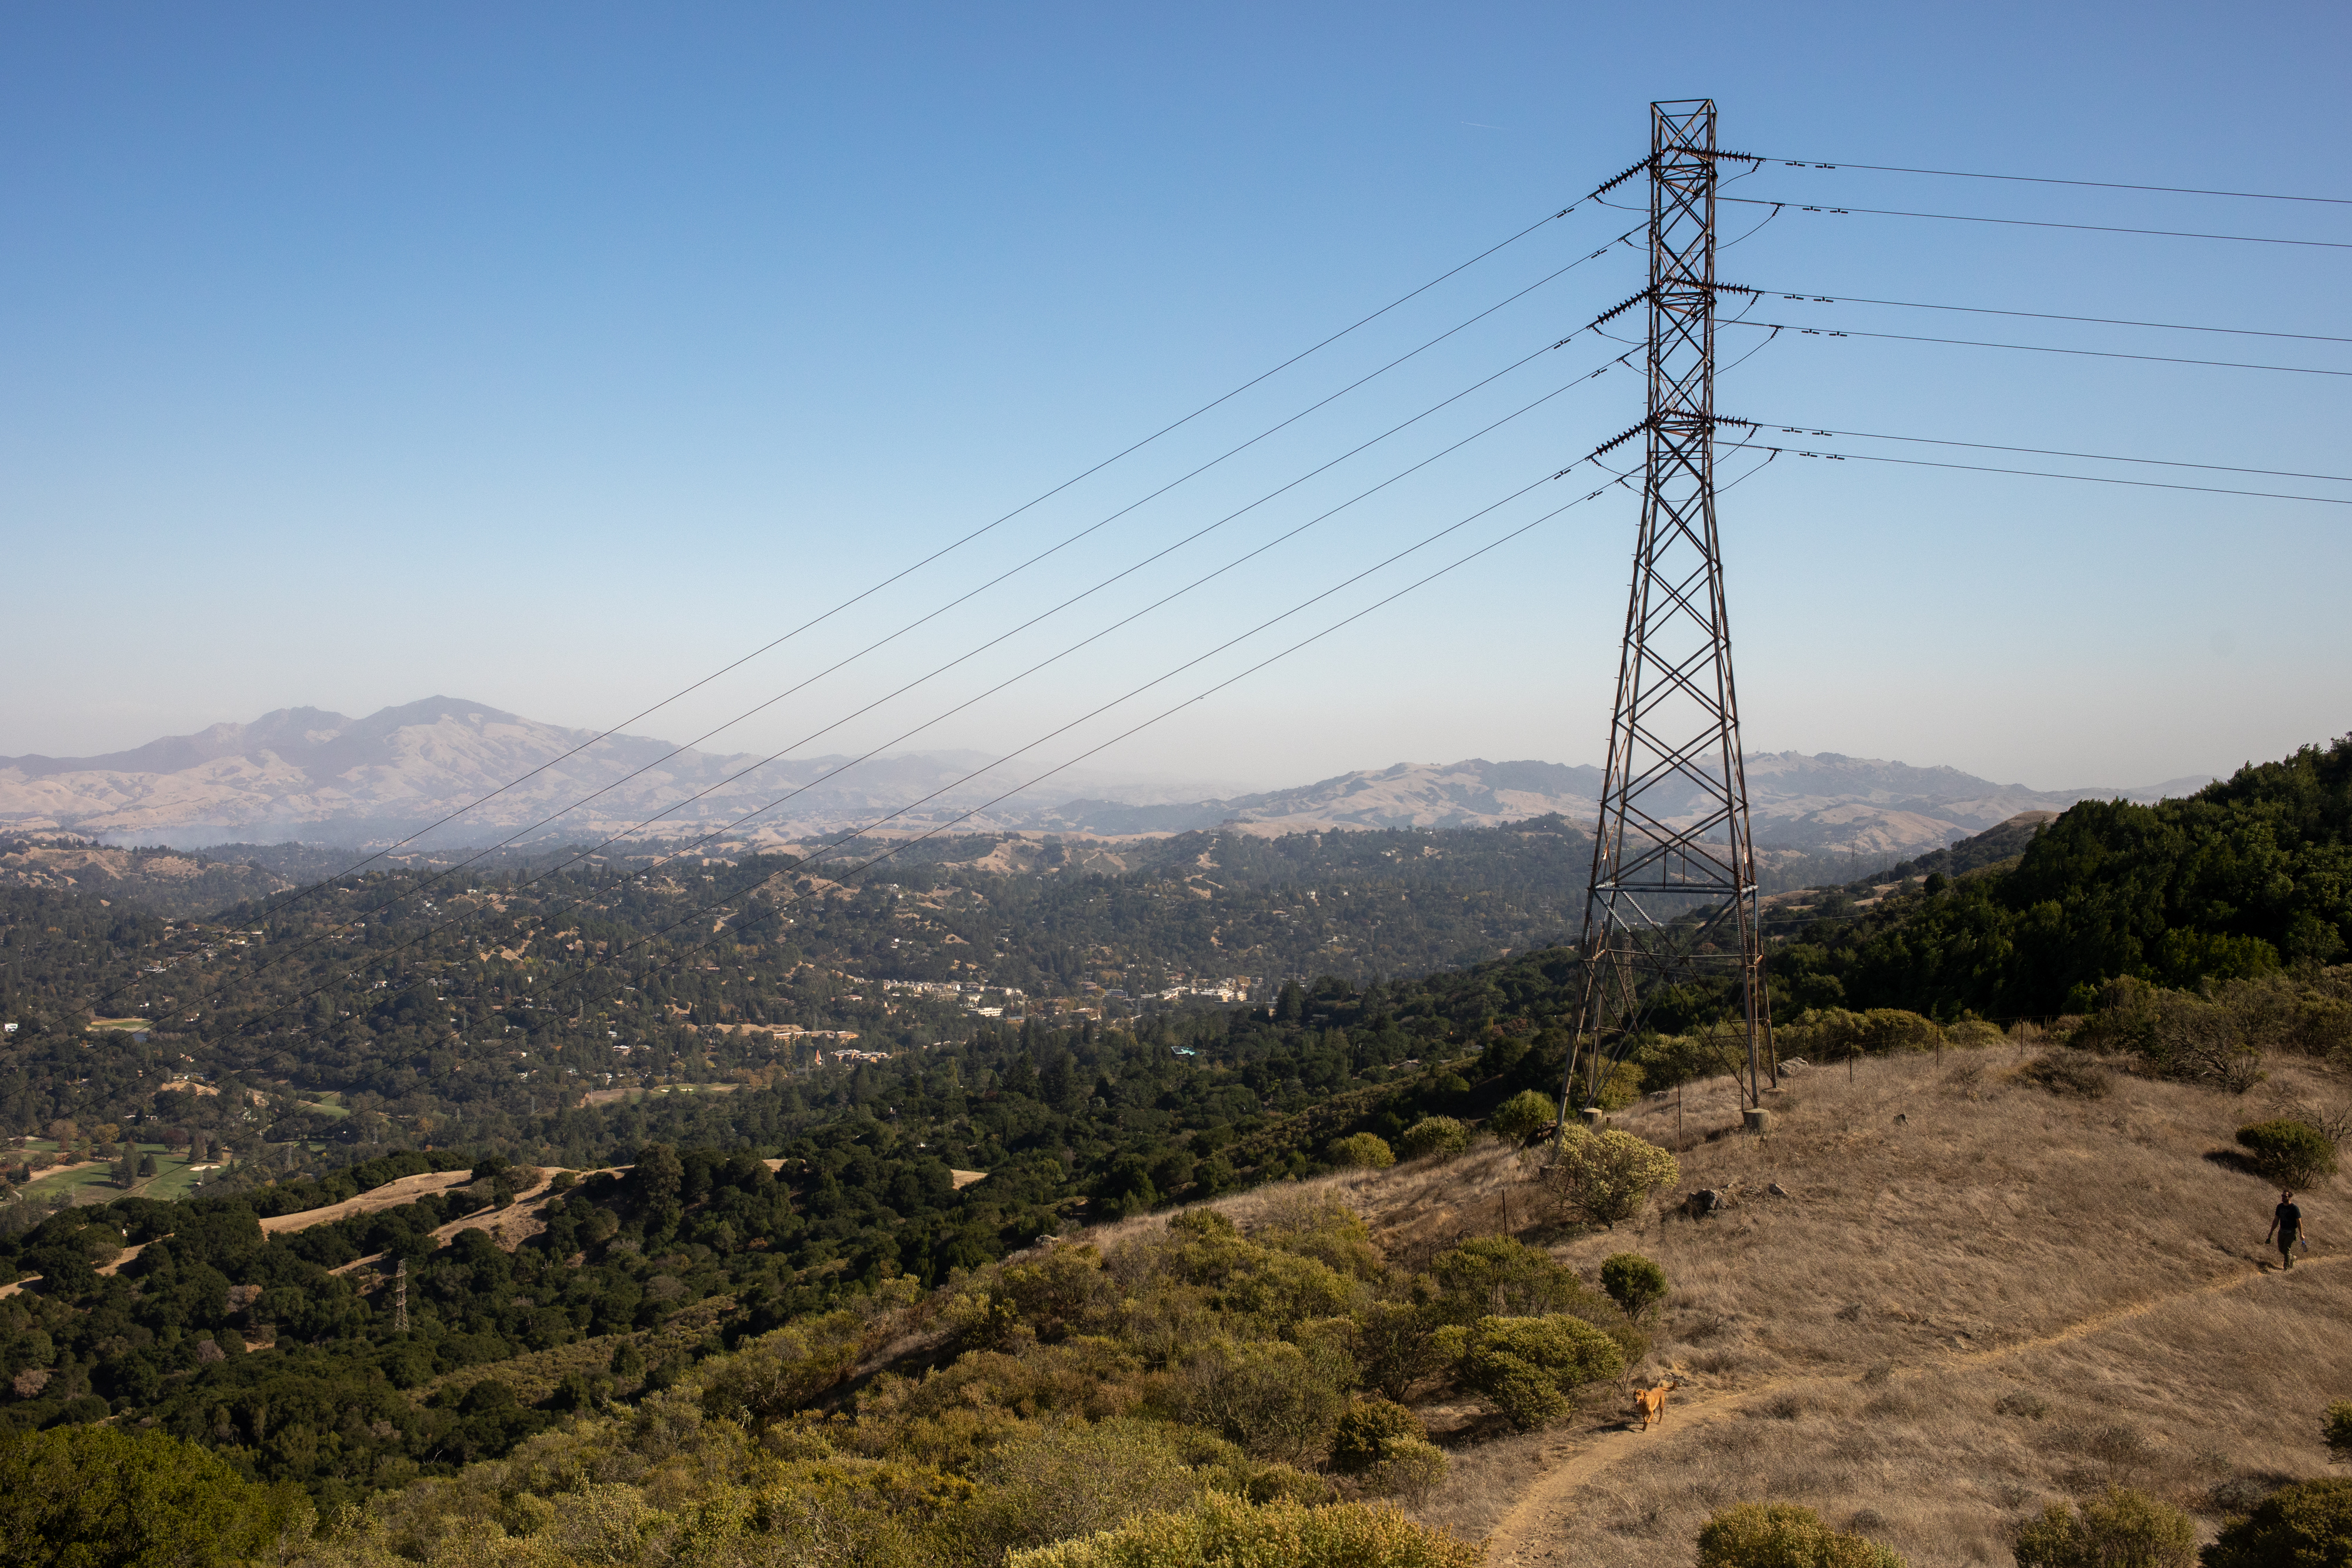 Smoke rises from the Lafayette Fire, left, as seen from Orinda, California, U.S., on Sunday, Oct. 27, 2019. In Lafayette, east of San Francisco, county fire officials are investigating a fallen PG&E transformer and a conductor that came into contact with a loose communication cable as the possible ignition sources of a blaze that forced evacuations, destroyed the Lafayette Tennis Club and damaged a home.